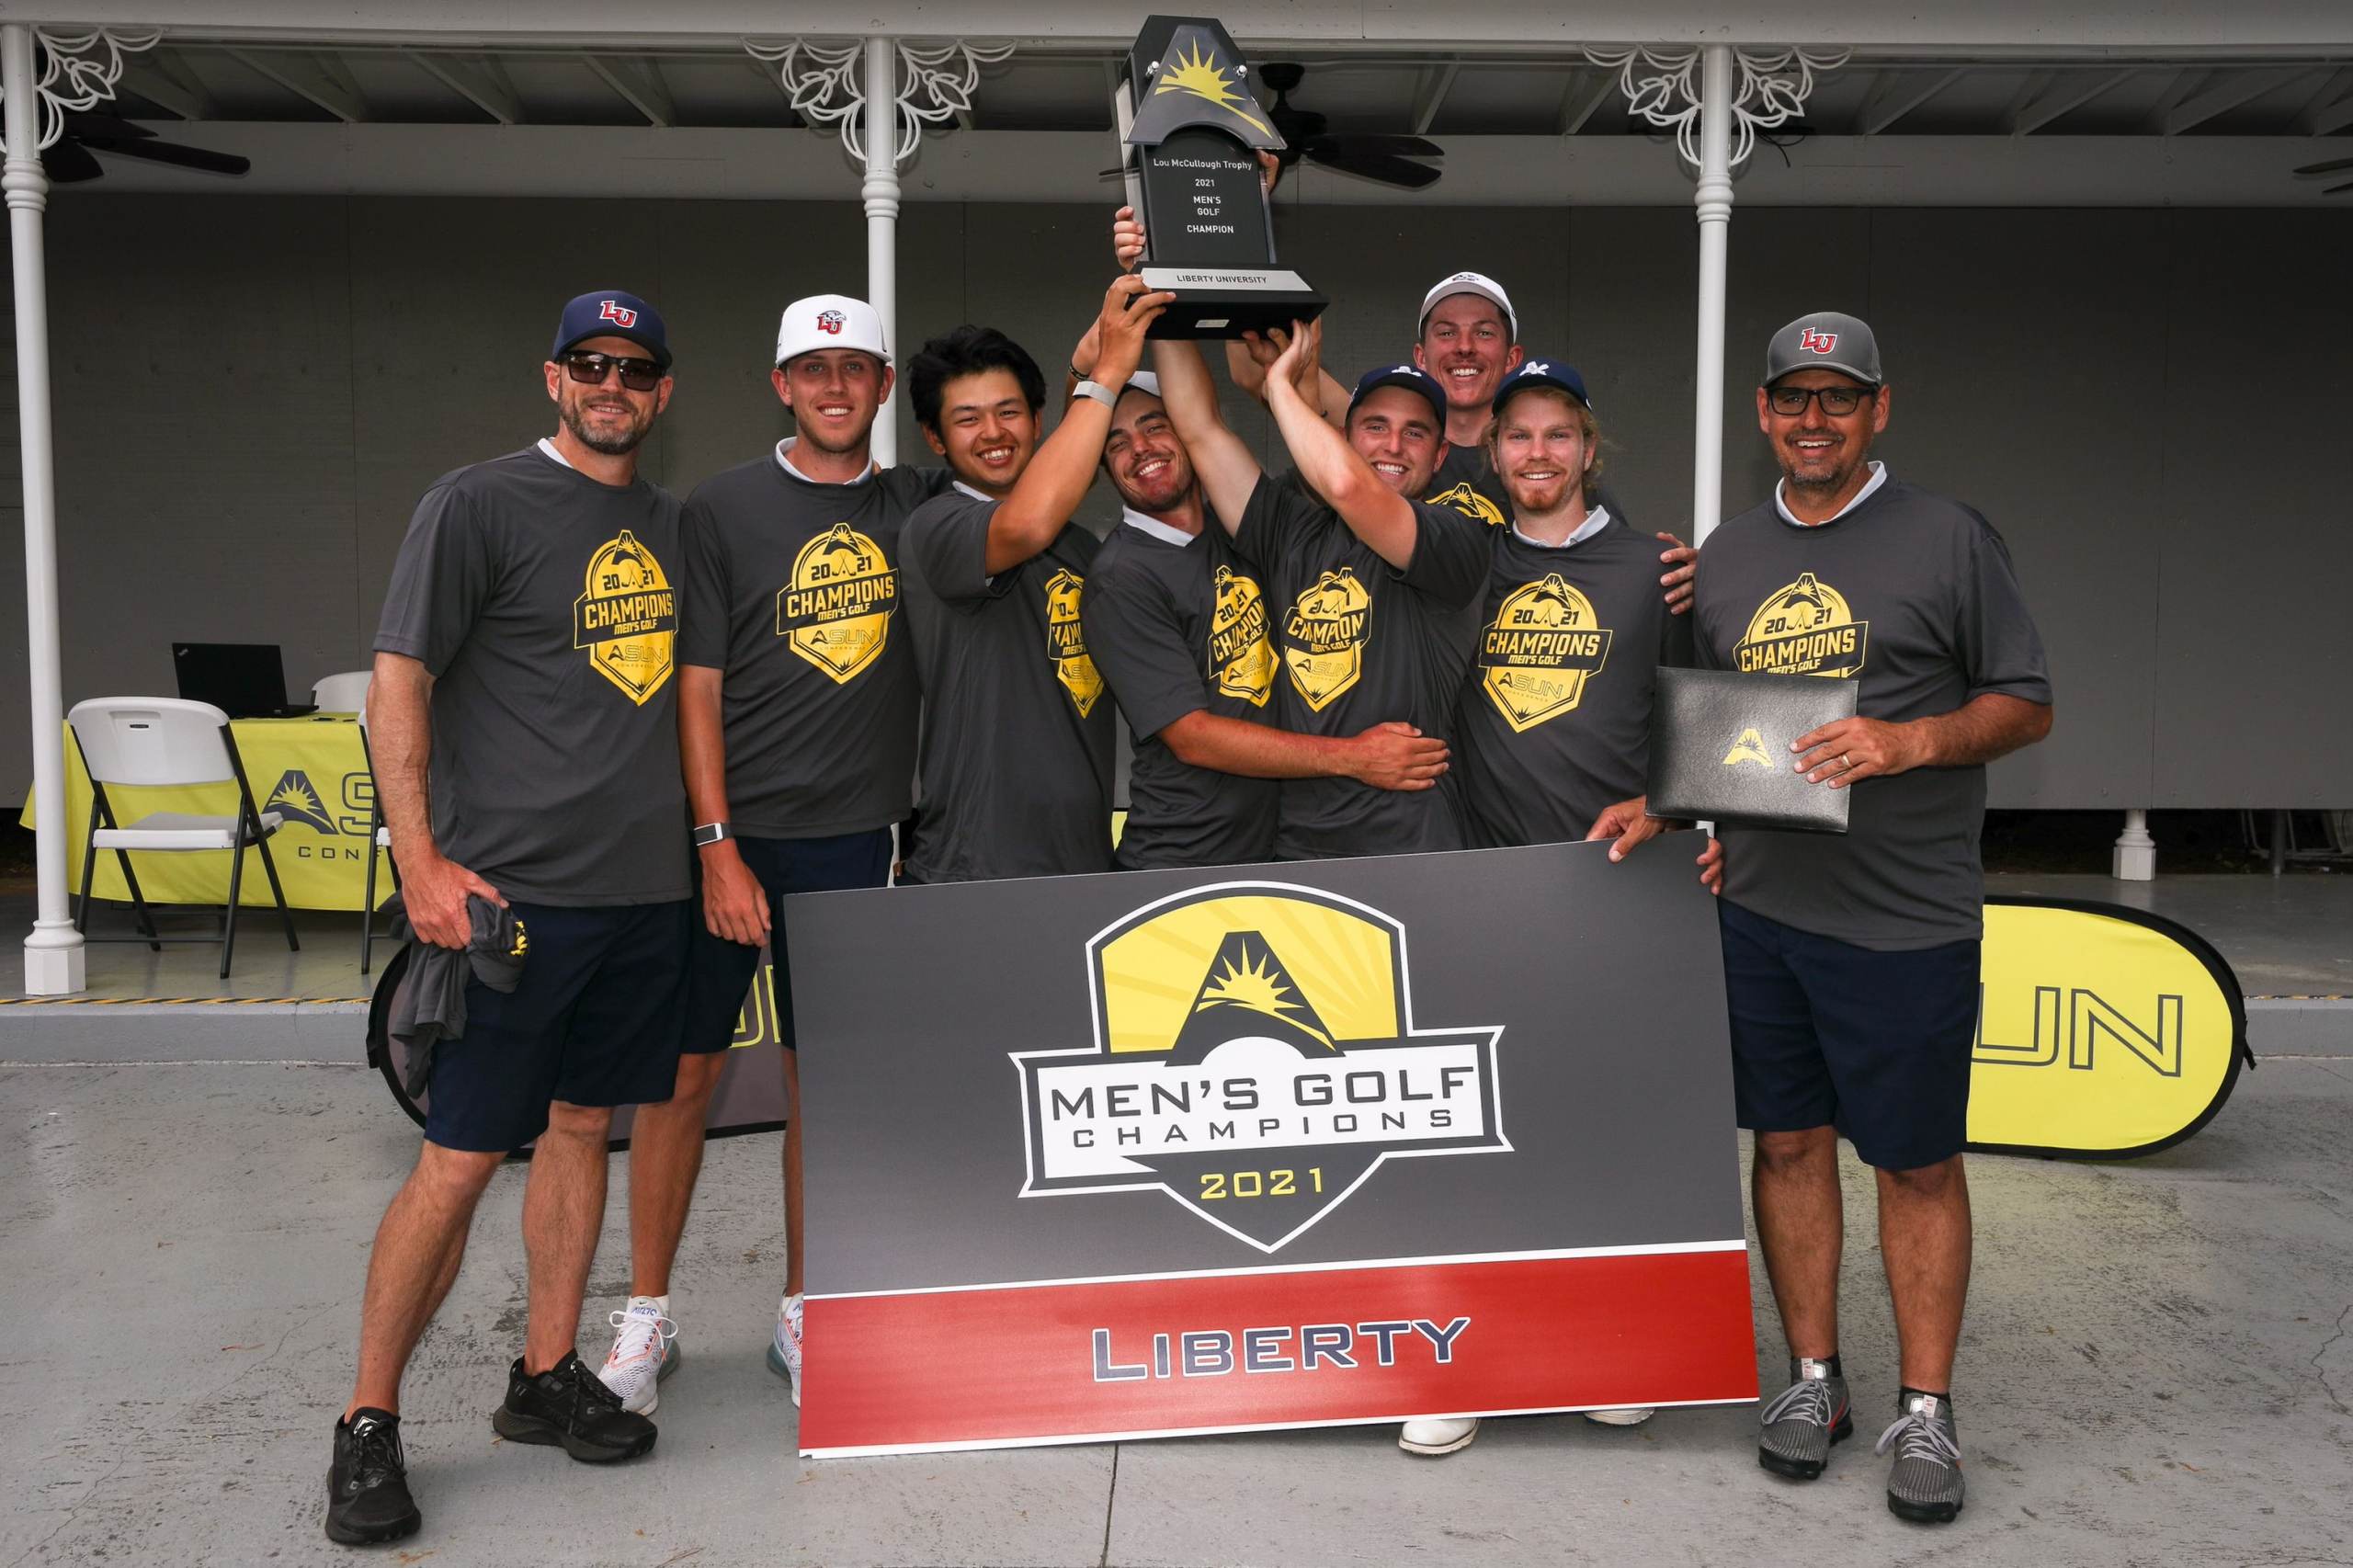 Golf team claims Liberty's first ASUN championship title